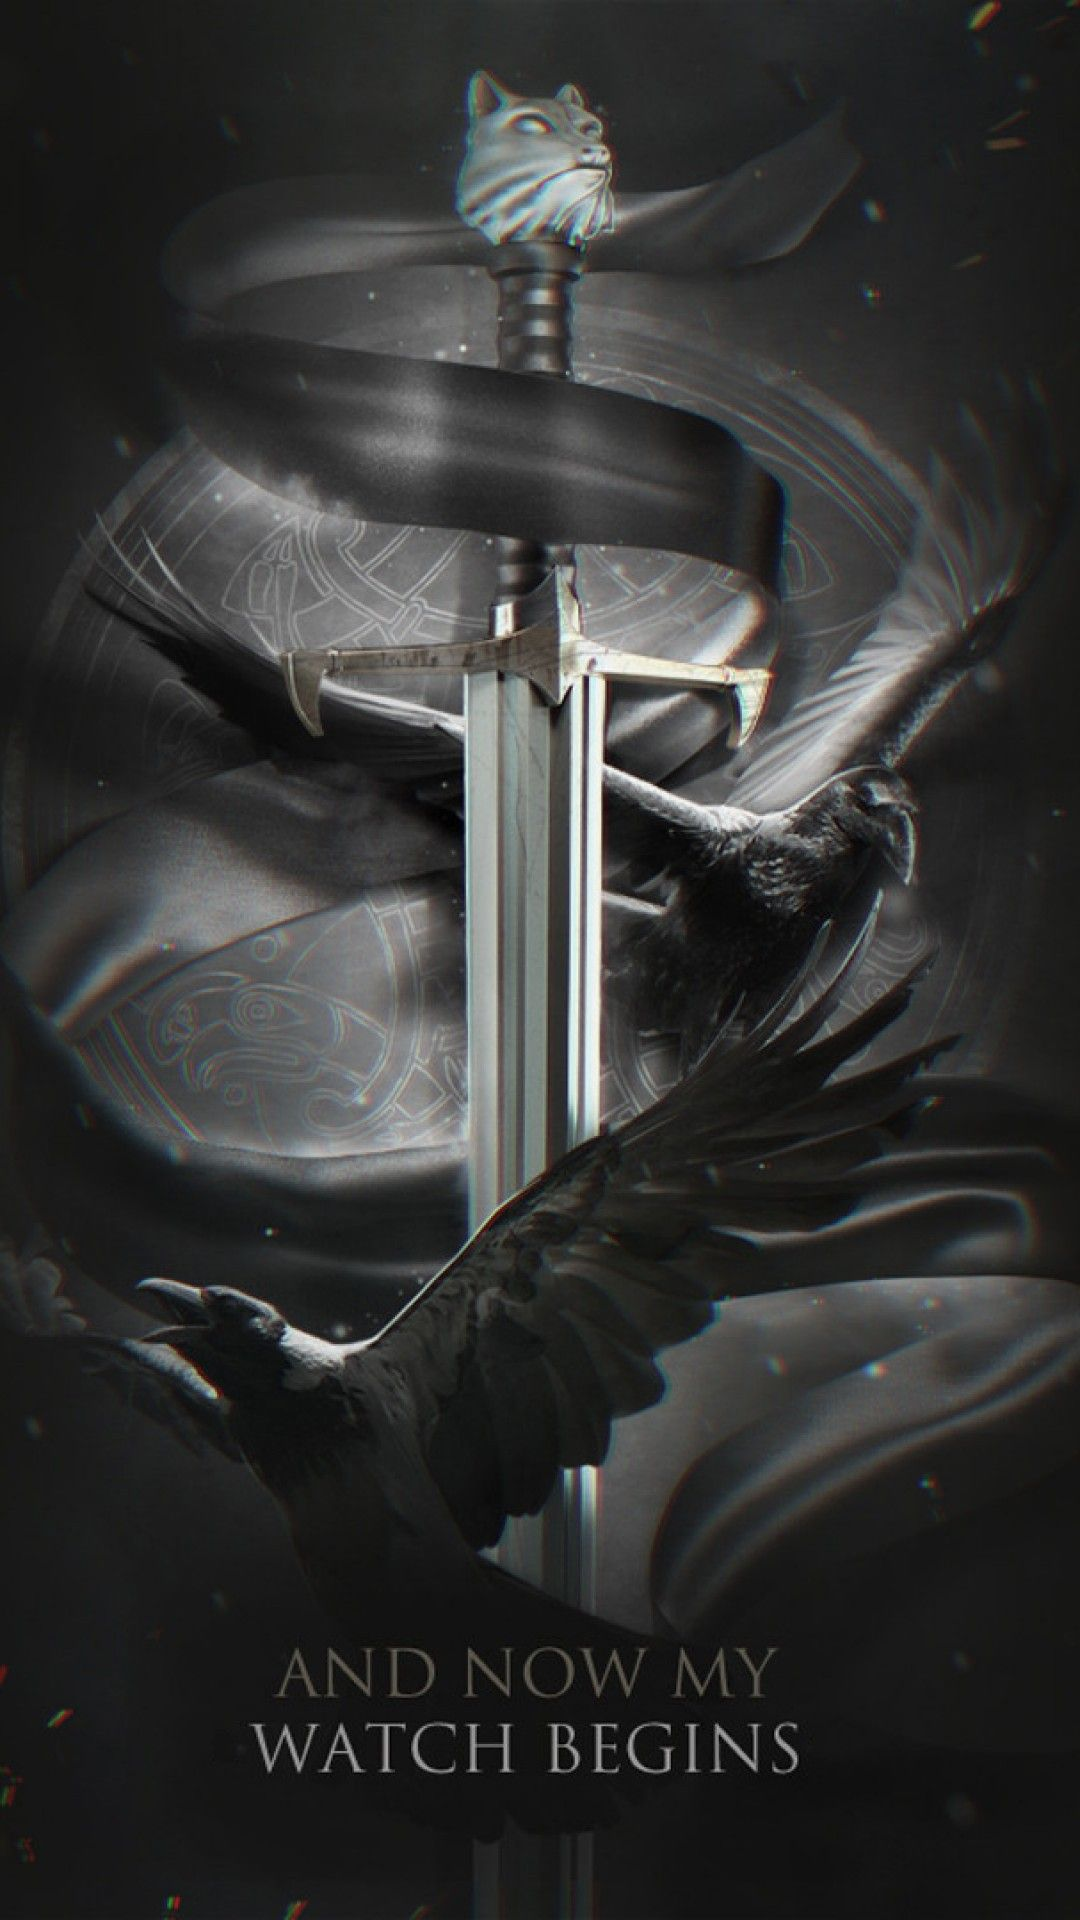 Pin By Zenzone On Iphone Wallpapers Game Of Thrones Art